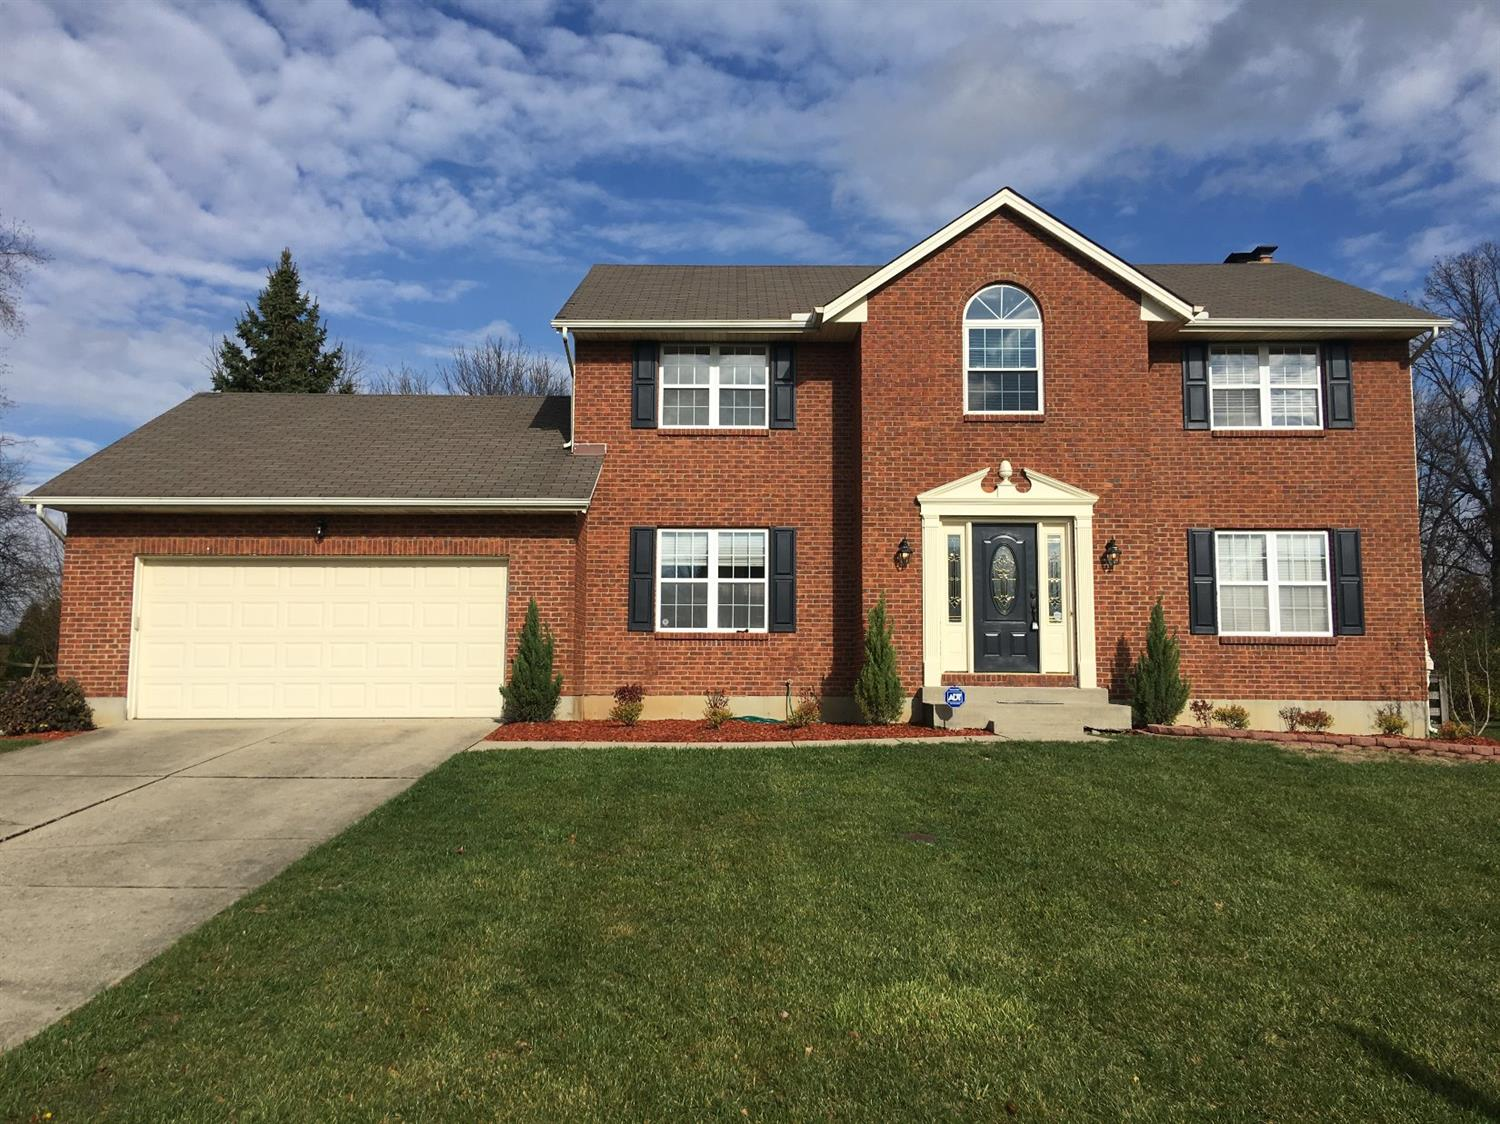 8194 Autumn Ln West Chester - East, OH